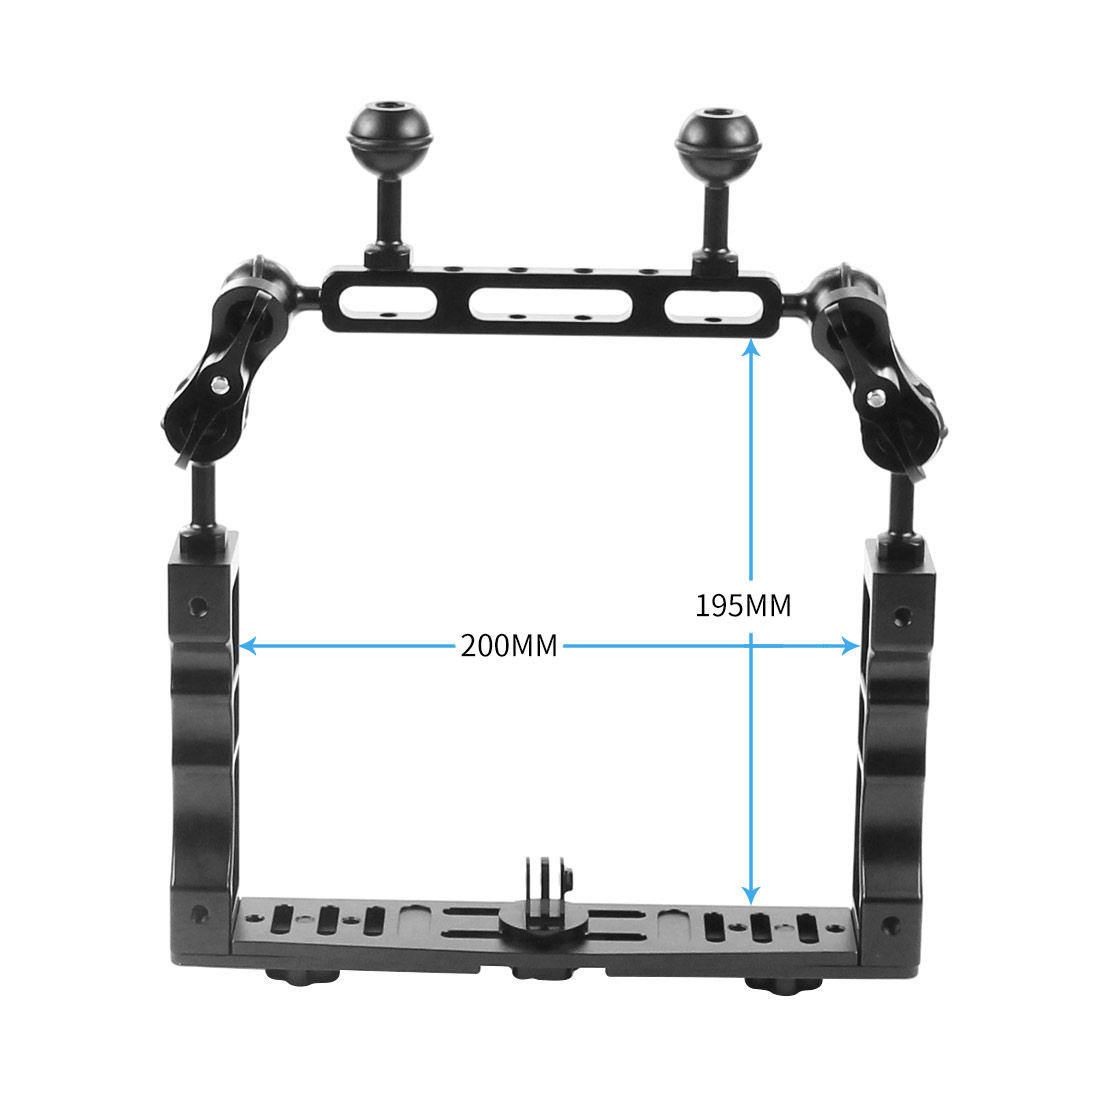 Underwater Tray Housings Arm Kit for Camera Holder Grip Diving Flash Arm Light C am Accessory Set KF22567 B in Sports Camcorder Cases from Consumer Electronics